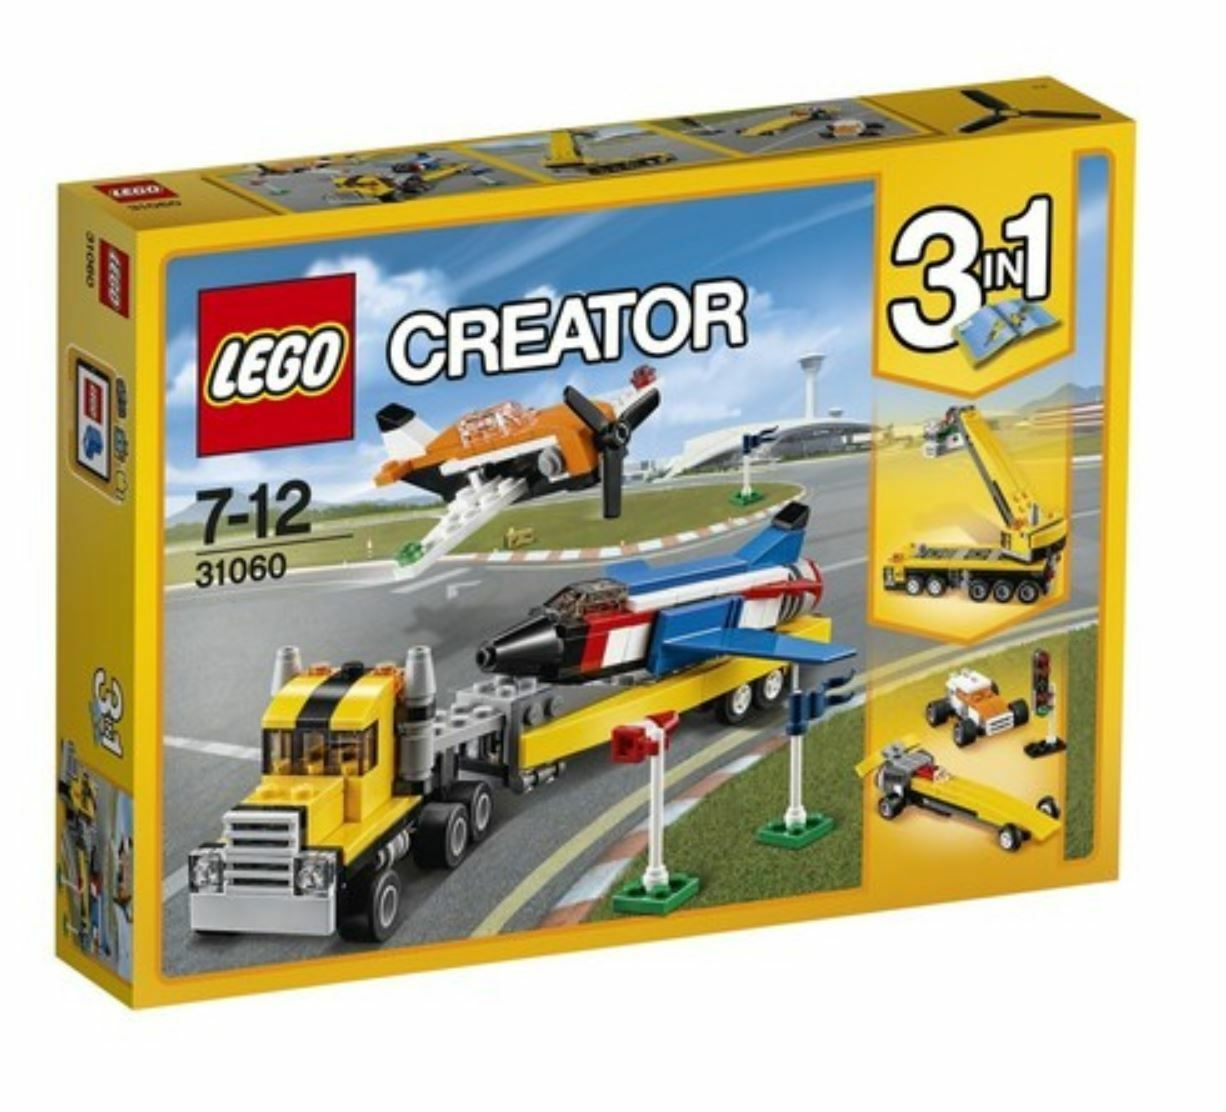 [LEGO] CREATOR Airshow Aces 31060 2017 Version Free Shipping